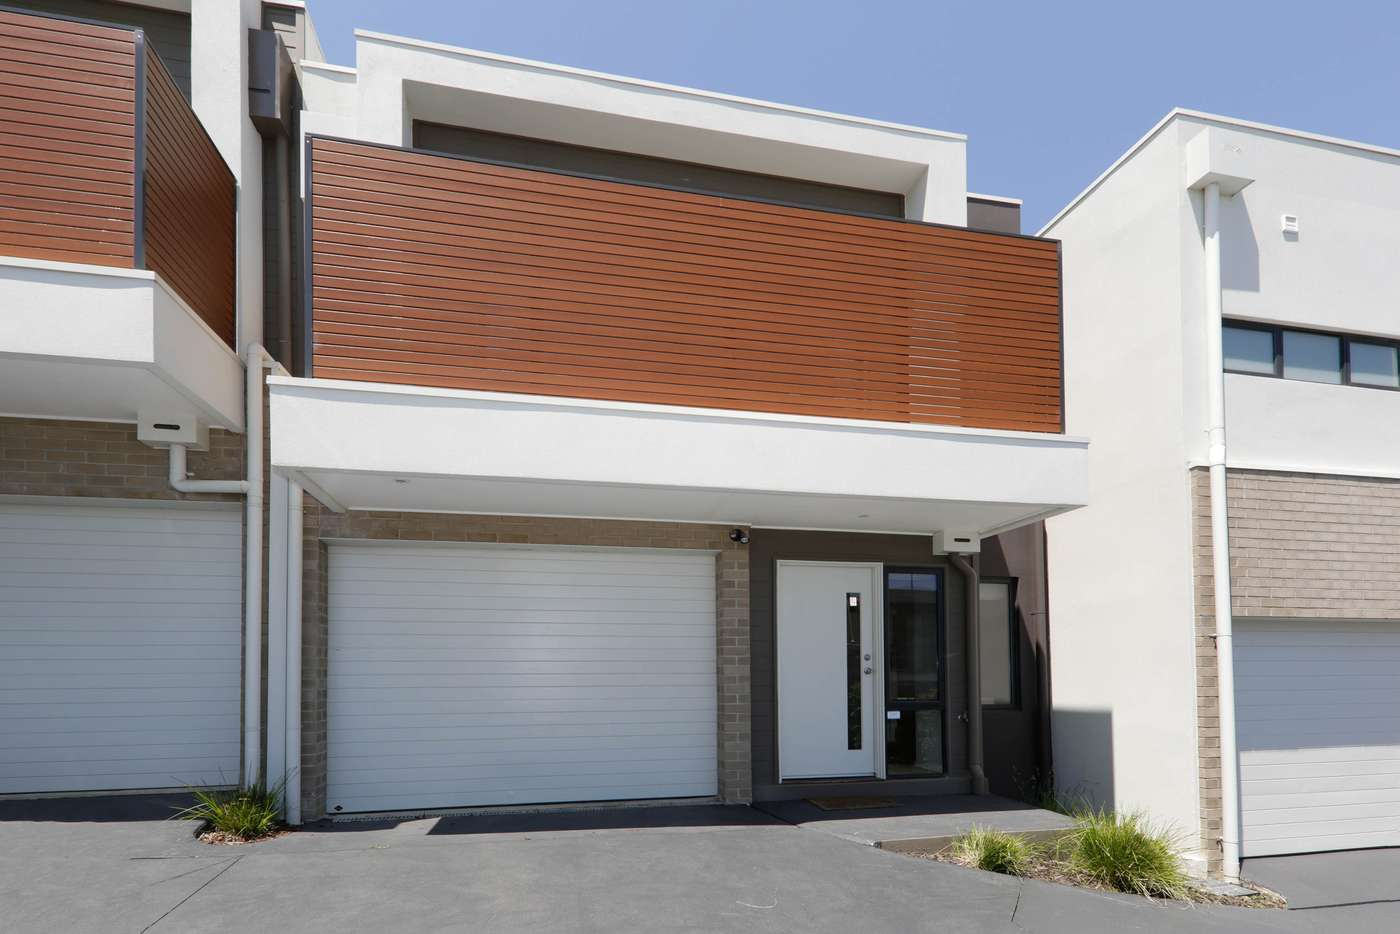 Main view of Homely townhouse listing, 2/32 Rathmullen Quadrant, Doncaster VIC 3108